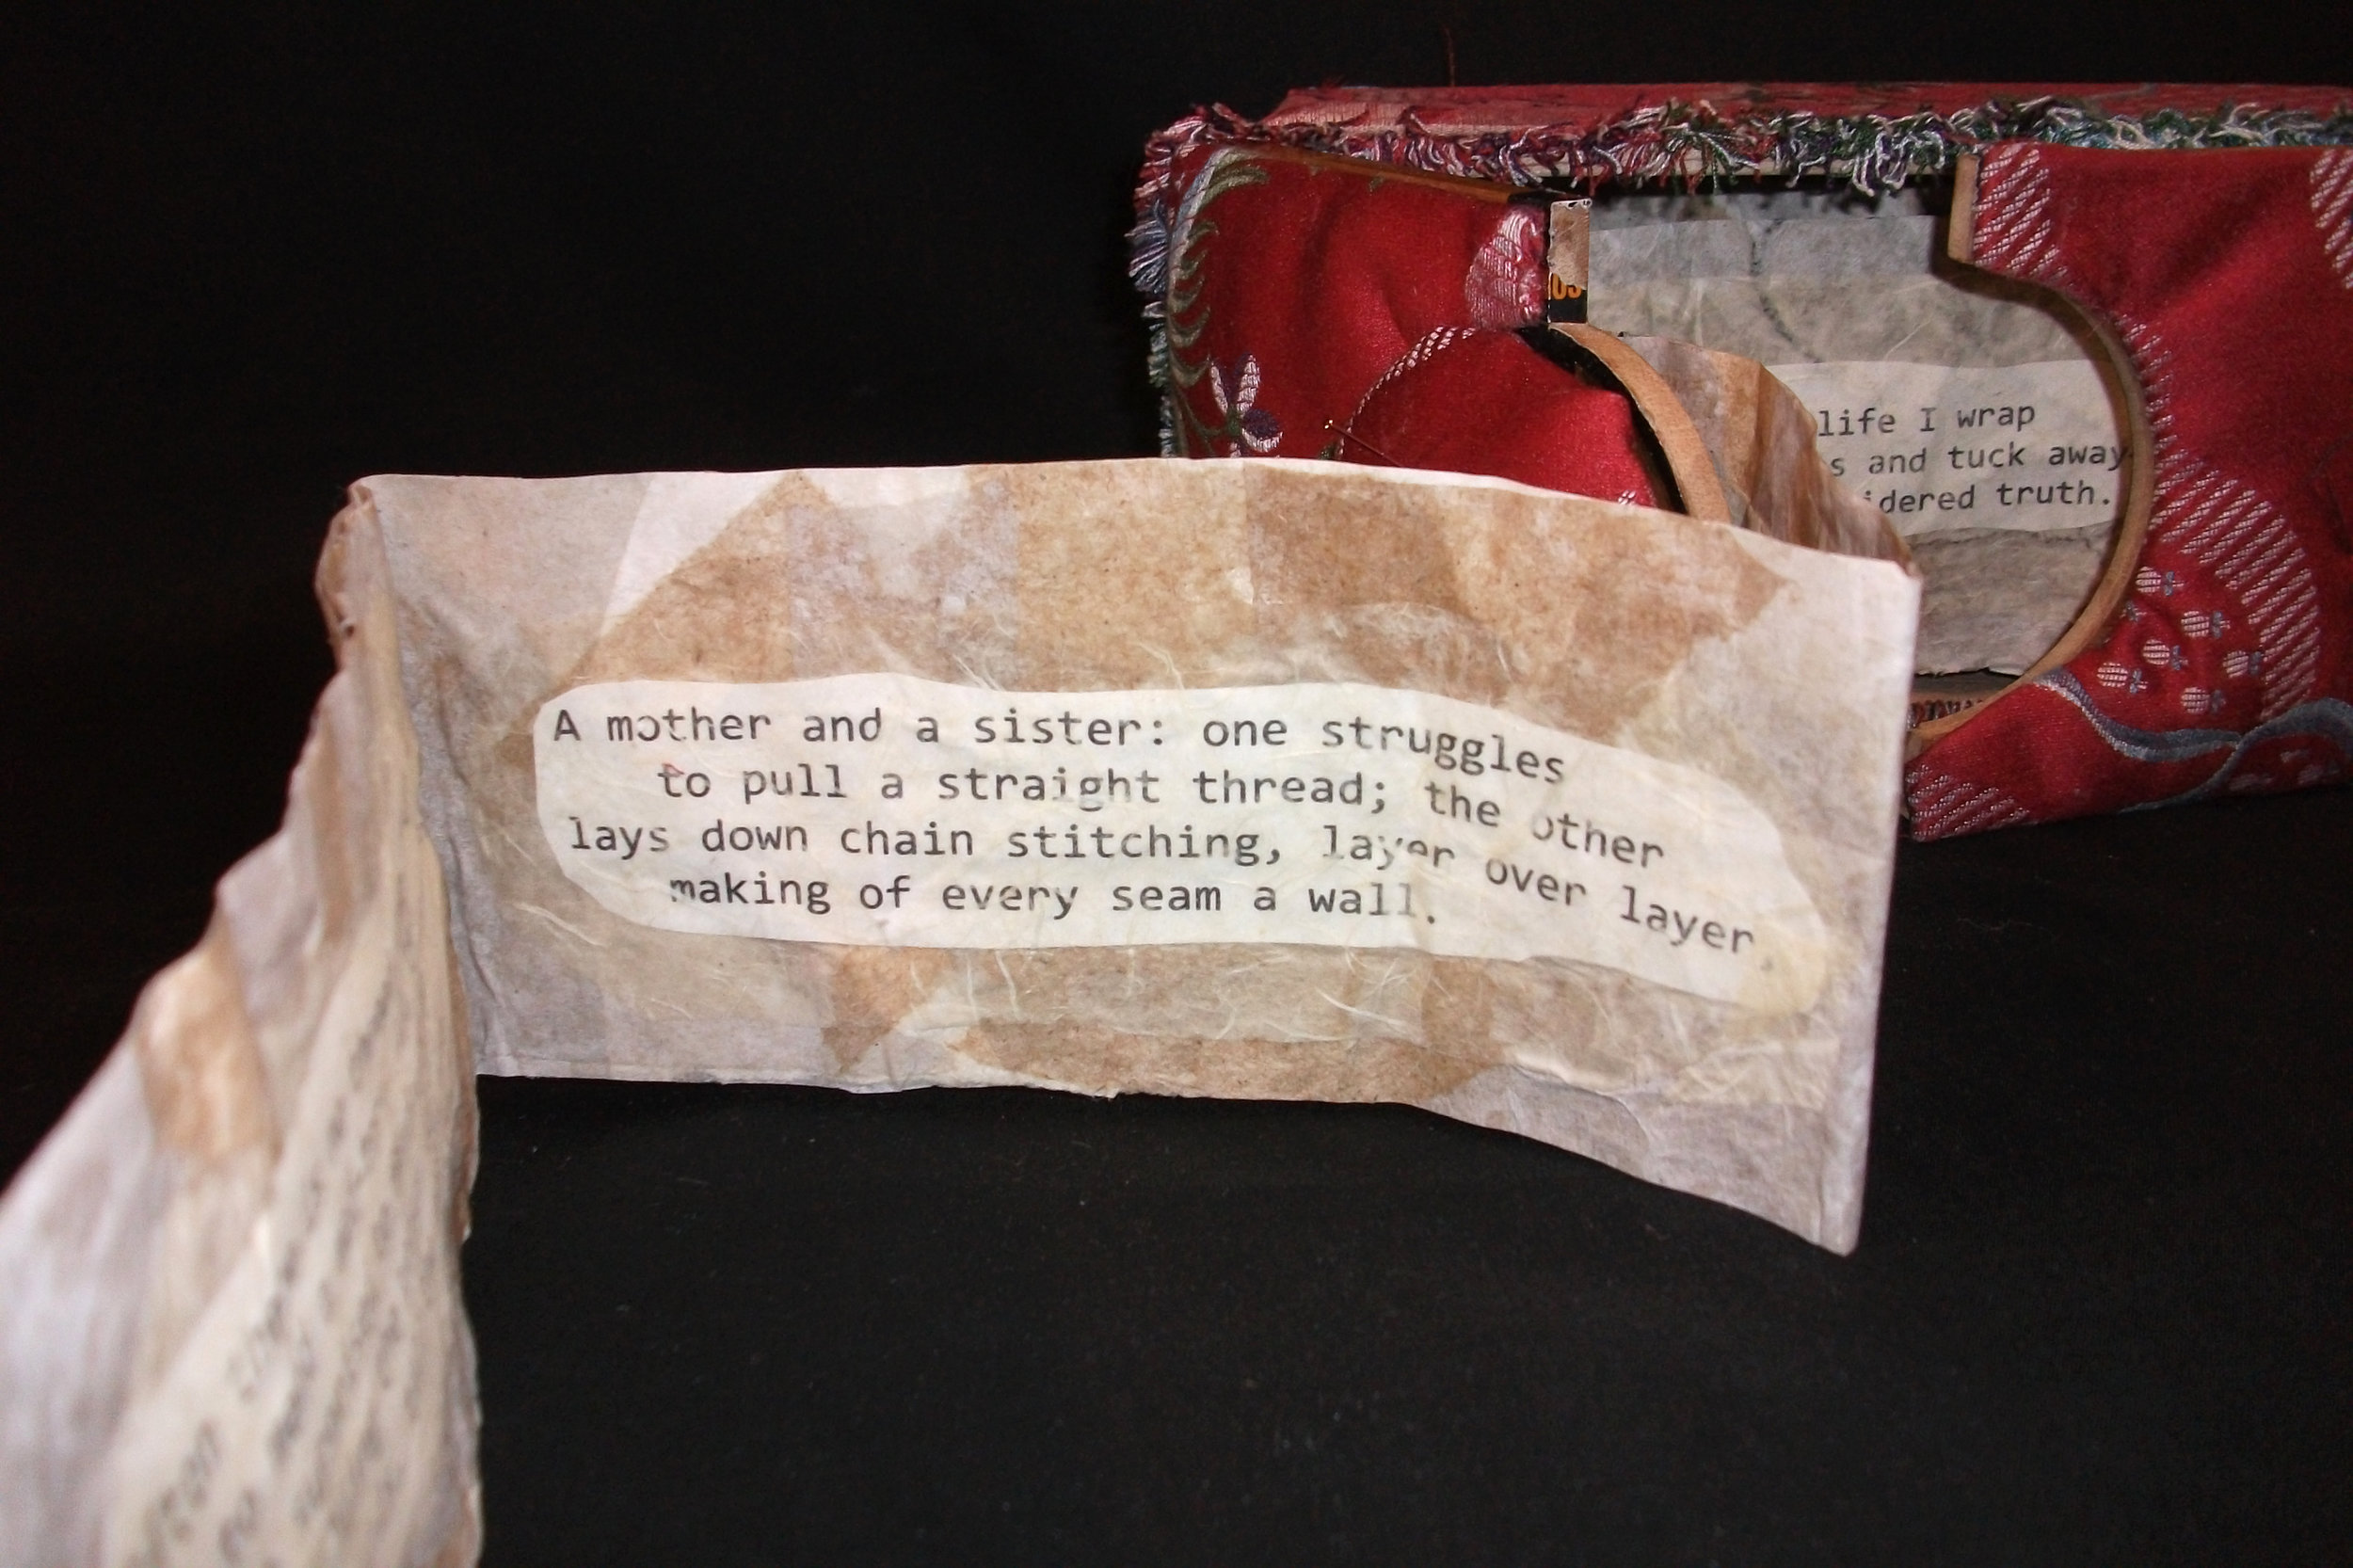 Lynn Pattison,  A Stitch in Time,  fabric, Wood, Paper, 2012, Kalamazoo, MI